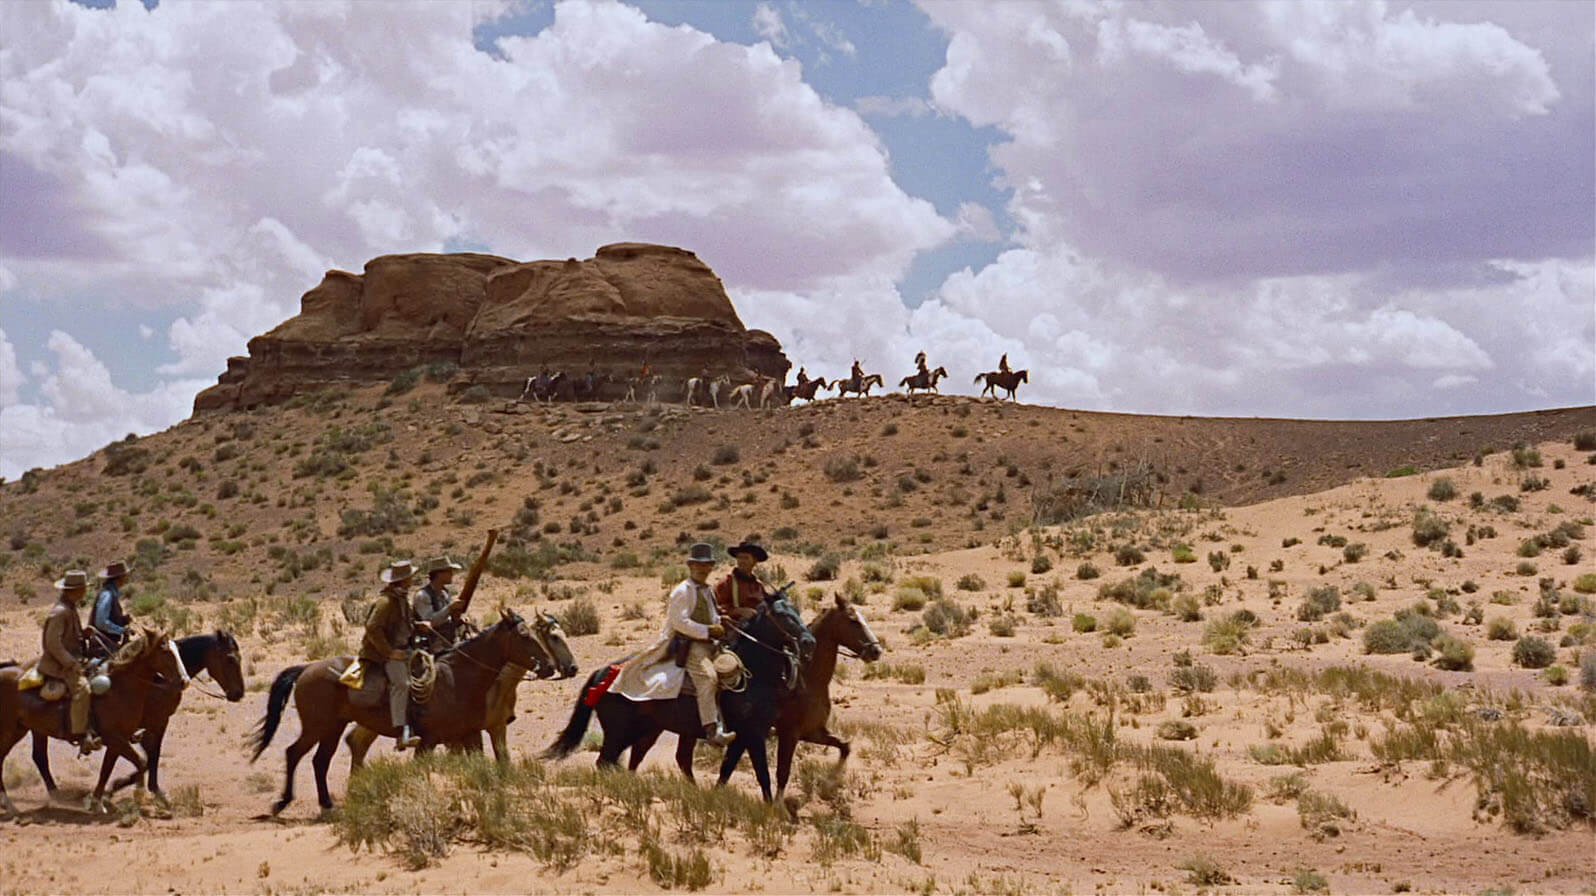 John Ford's The Searchers, one of the best Monument Valley movies.